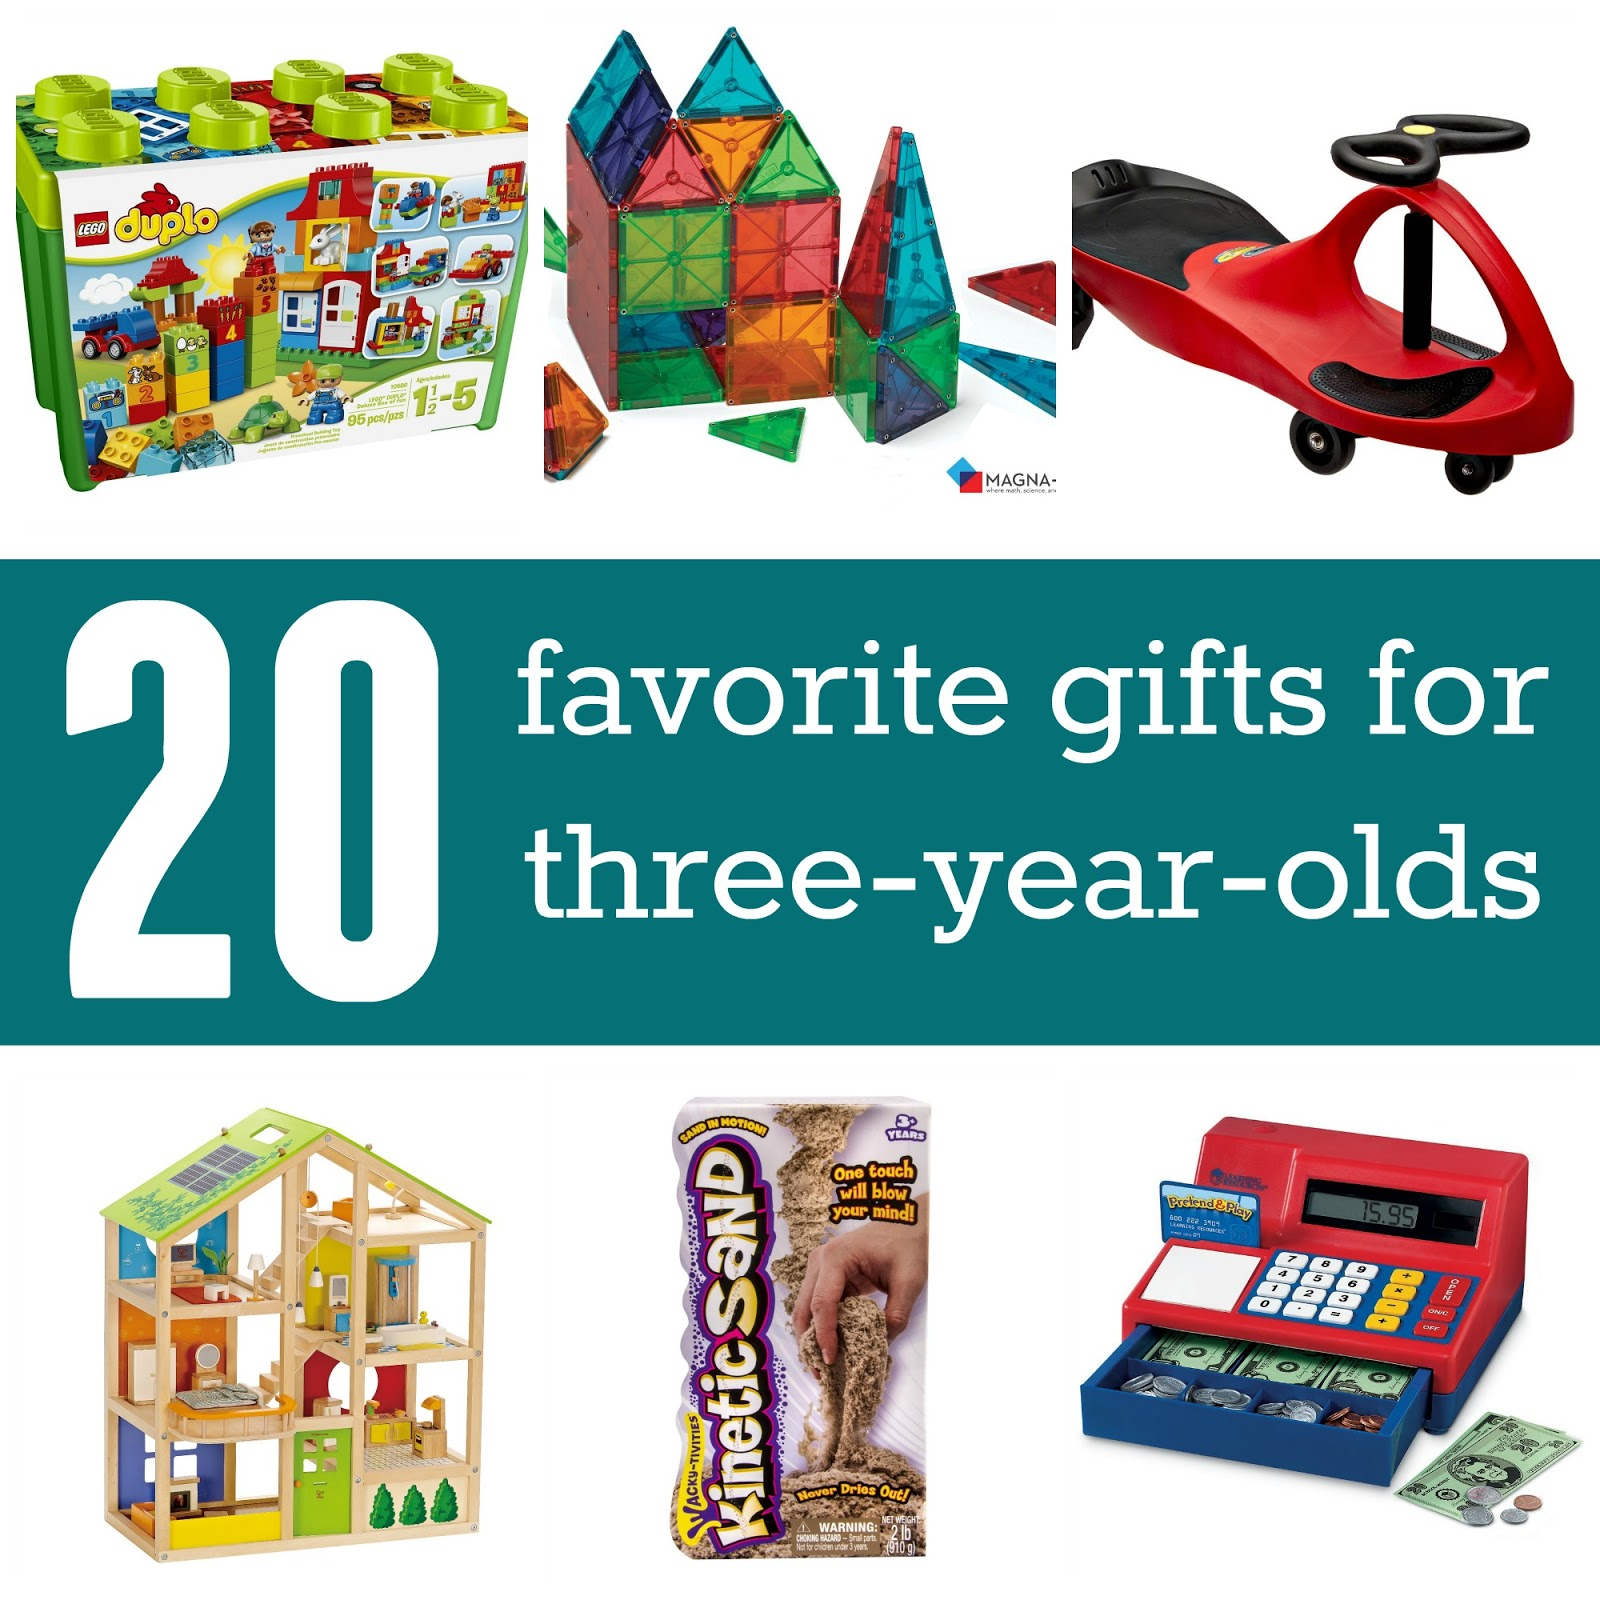 Toddler Approved Favorite Gifts for 3 year olds